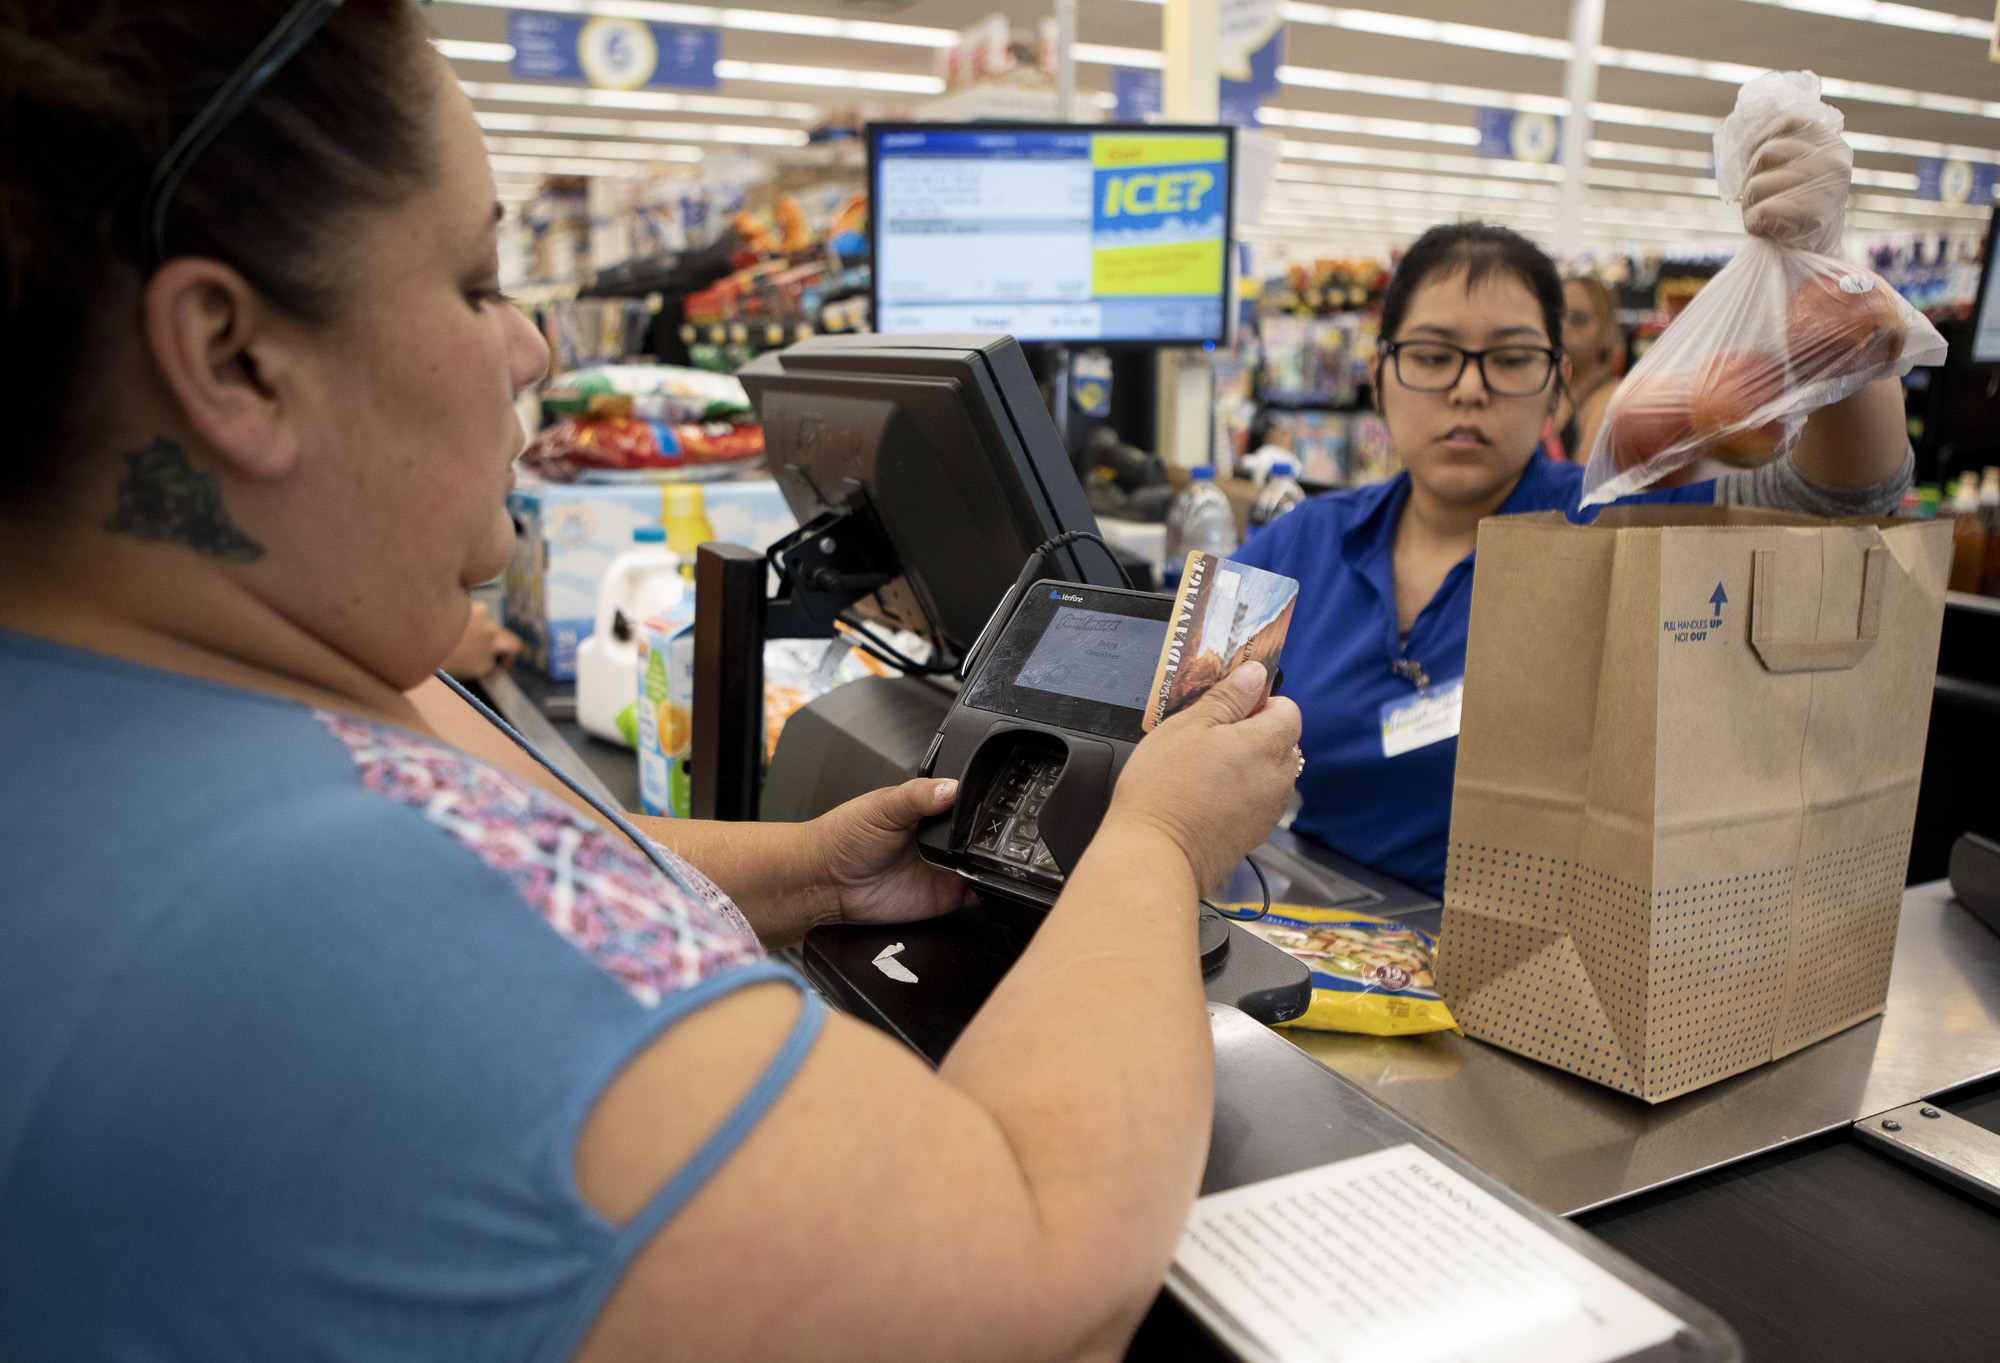 Antoinette Martinez uses CalFresh to pay for her groceries at FoodMaxx